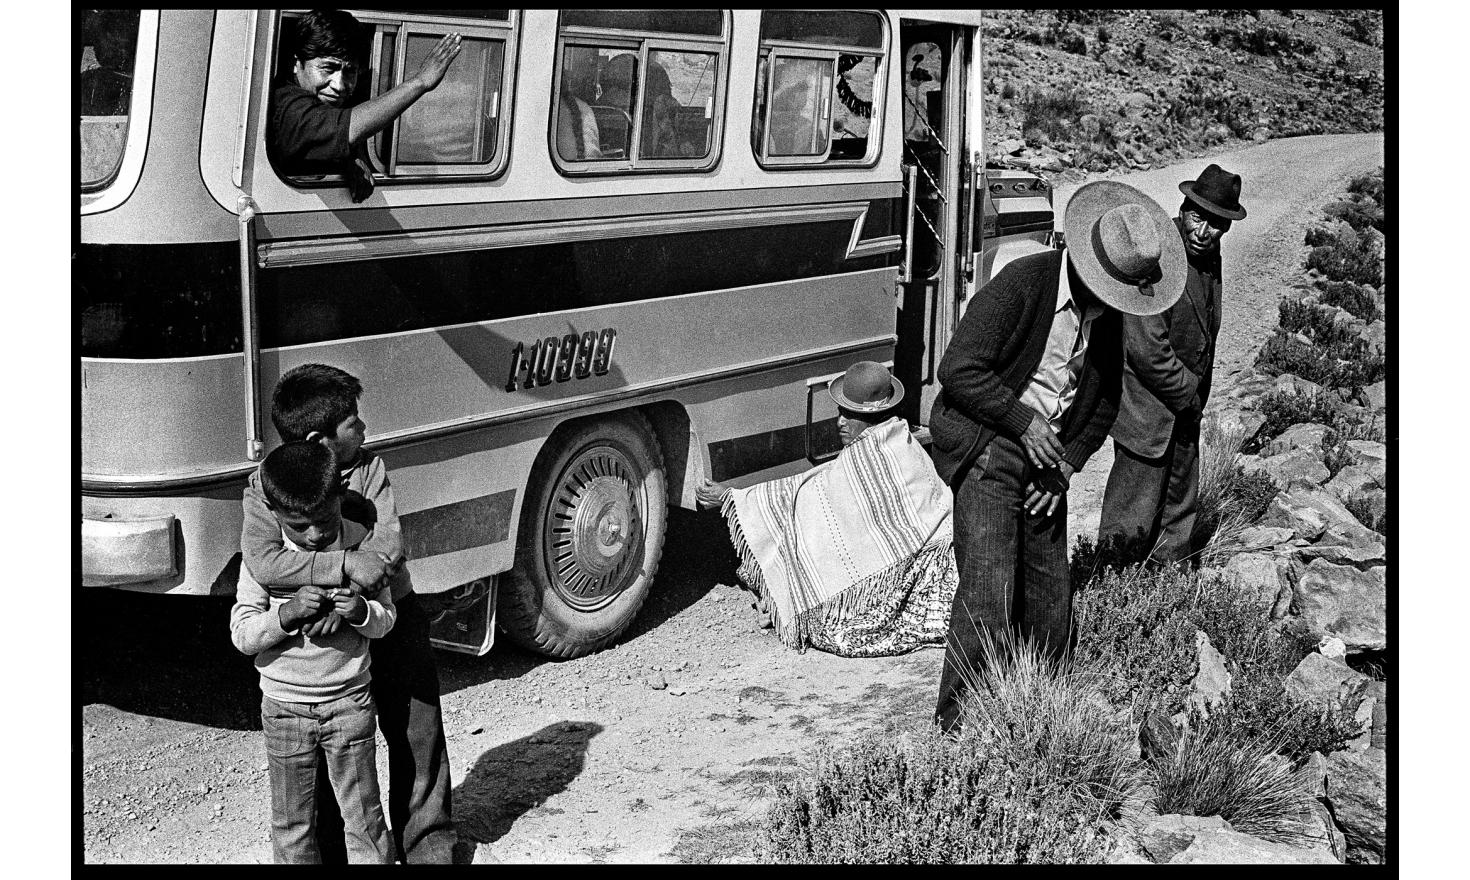 Bus stop on the way to lake Titicaca. Bolivia, november 1982